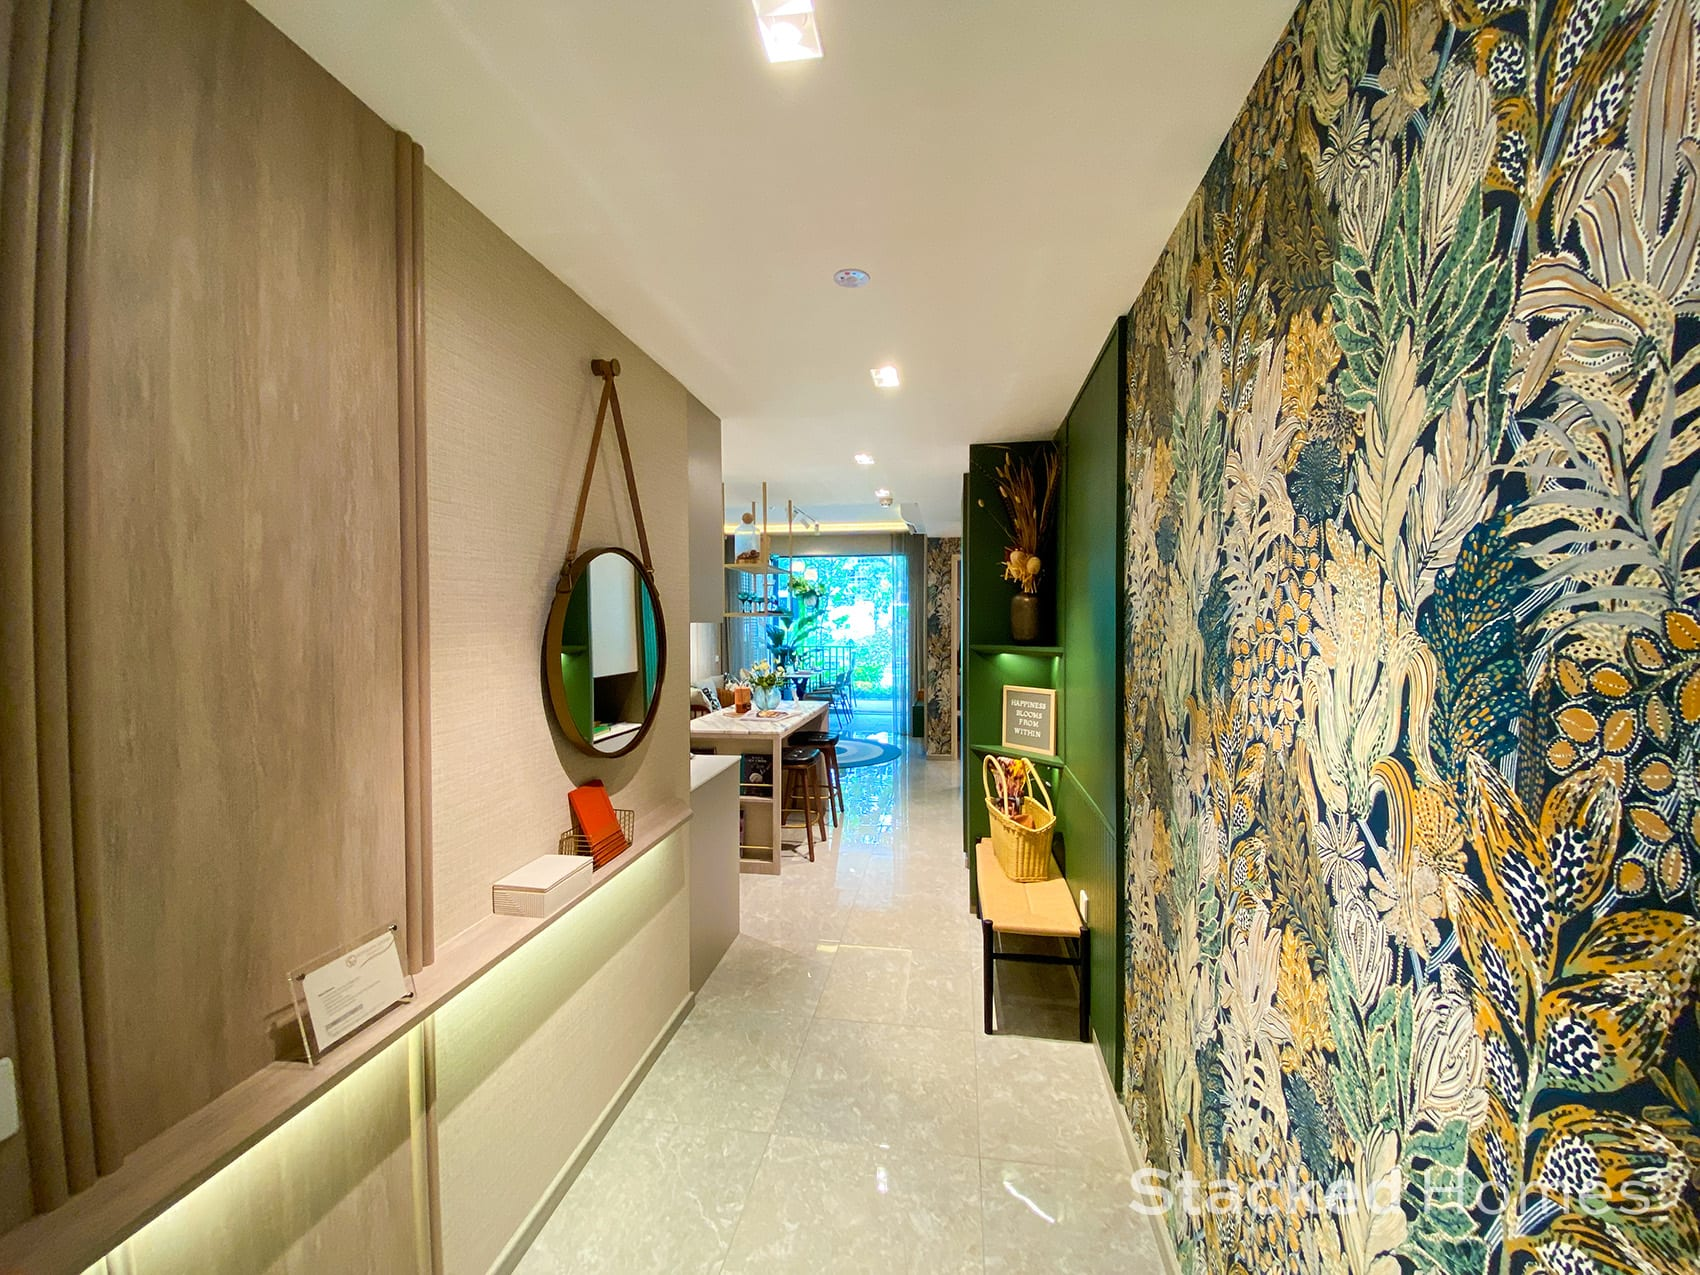 sengkang grand residences 2 bedroom entranceway